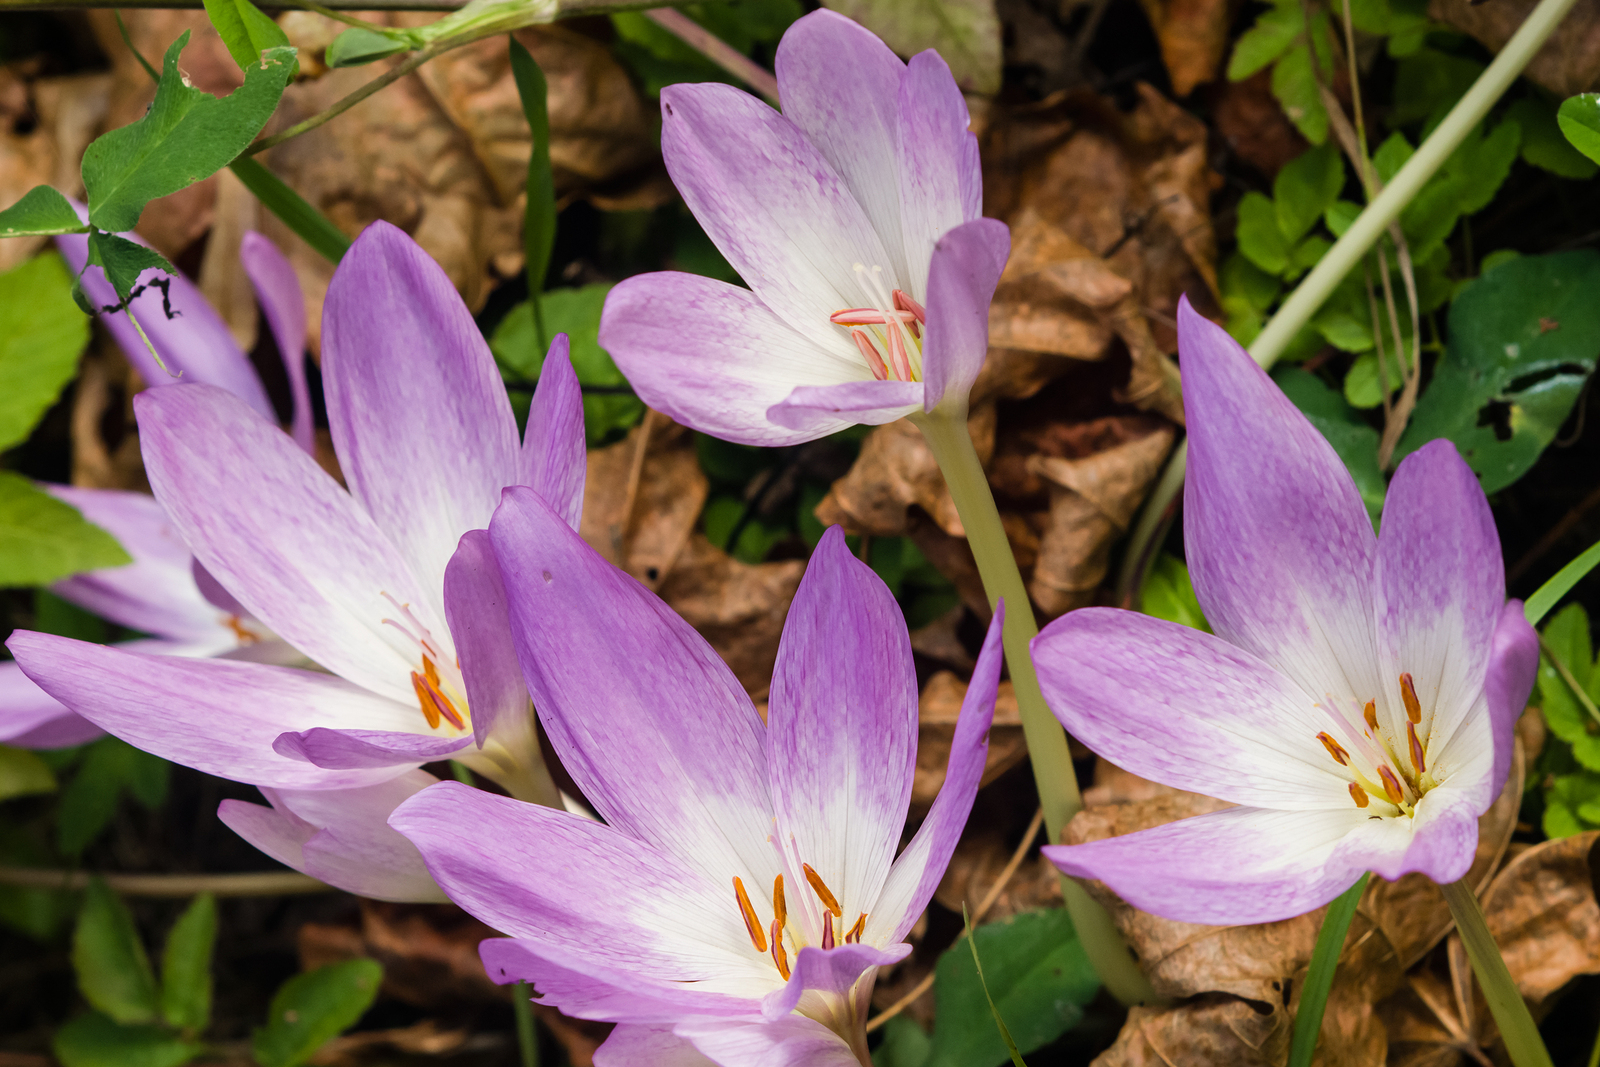 Autumn crocus a touch of spring in fall missouri environment and garden news article - Flowers that bloom from spring to fall ...